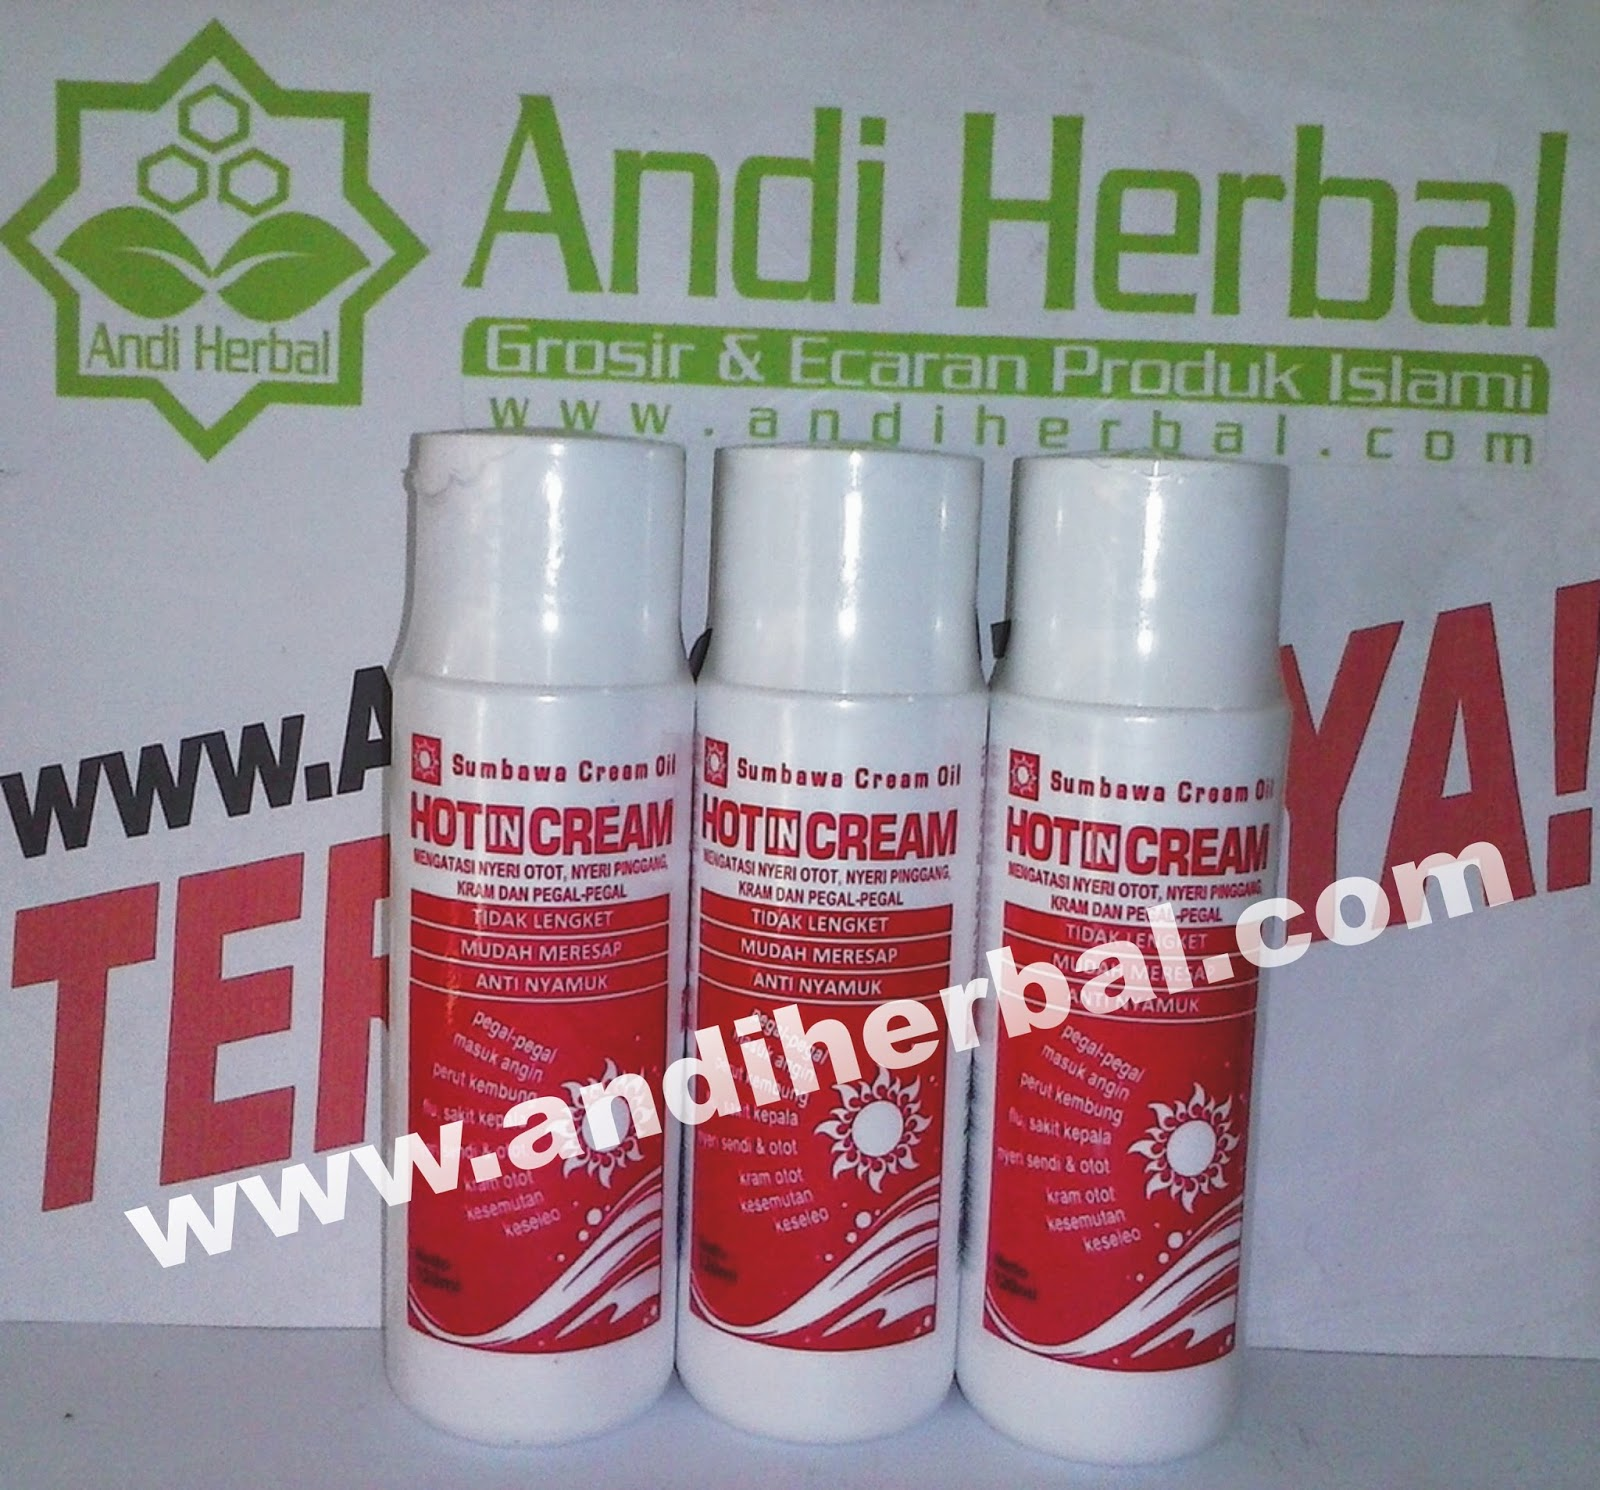 Hot In Cream Sumbawa Cream Oil 120 ml Andiherbal.com